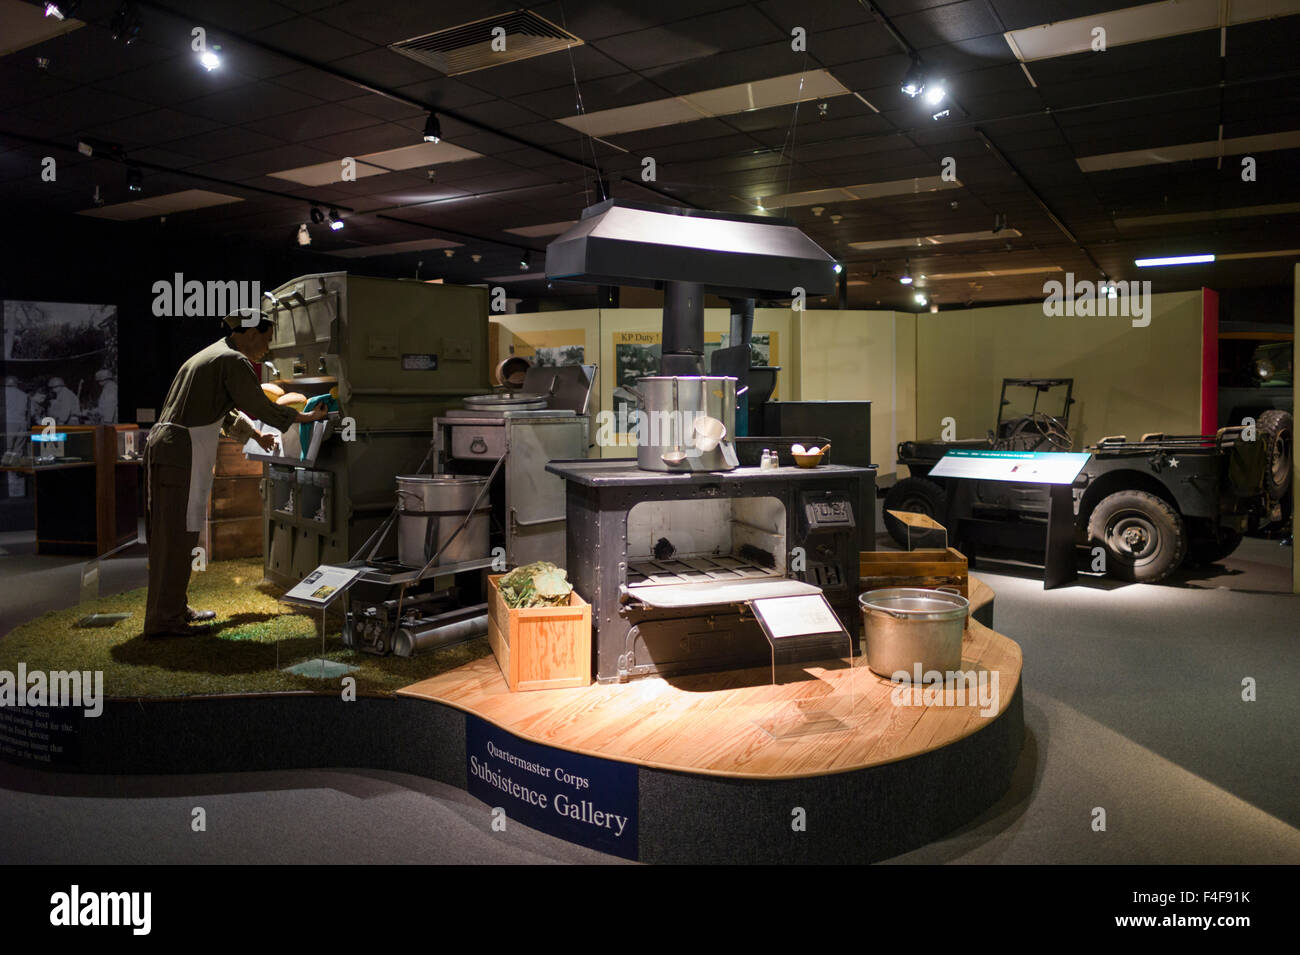 USA, Virginia, Fort Lee, US Army Quartermaster Corps Museum at Fort Lee, army field kitchen - Stock Image